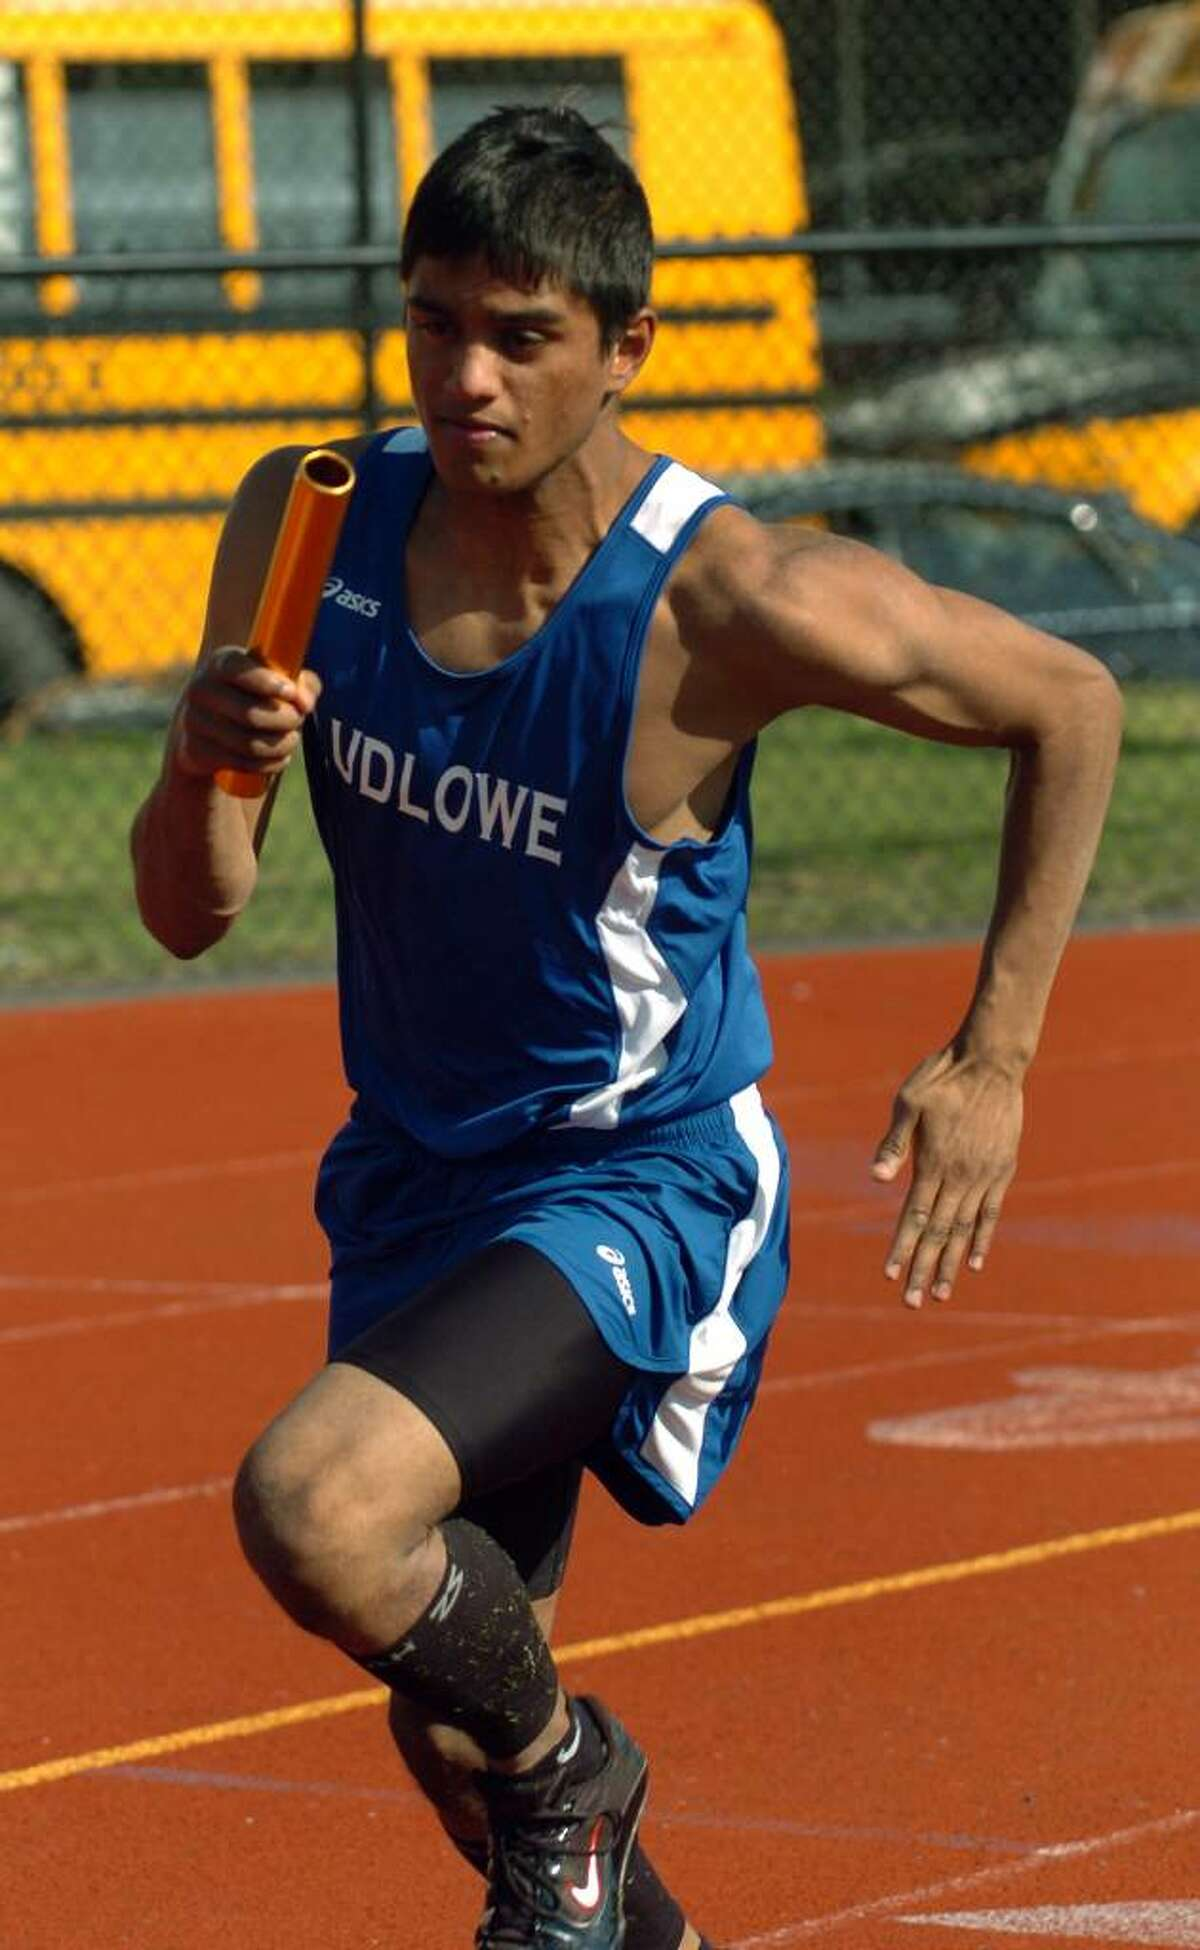 Fairfield Ludlowe's Nabid Ahmed competes in the 4X100 relay, during track action in Fairfield, Conn. on Friday April 30, 2010.